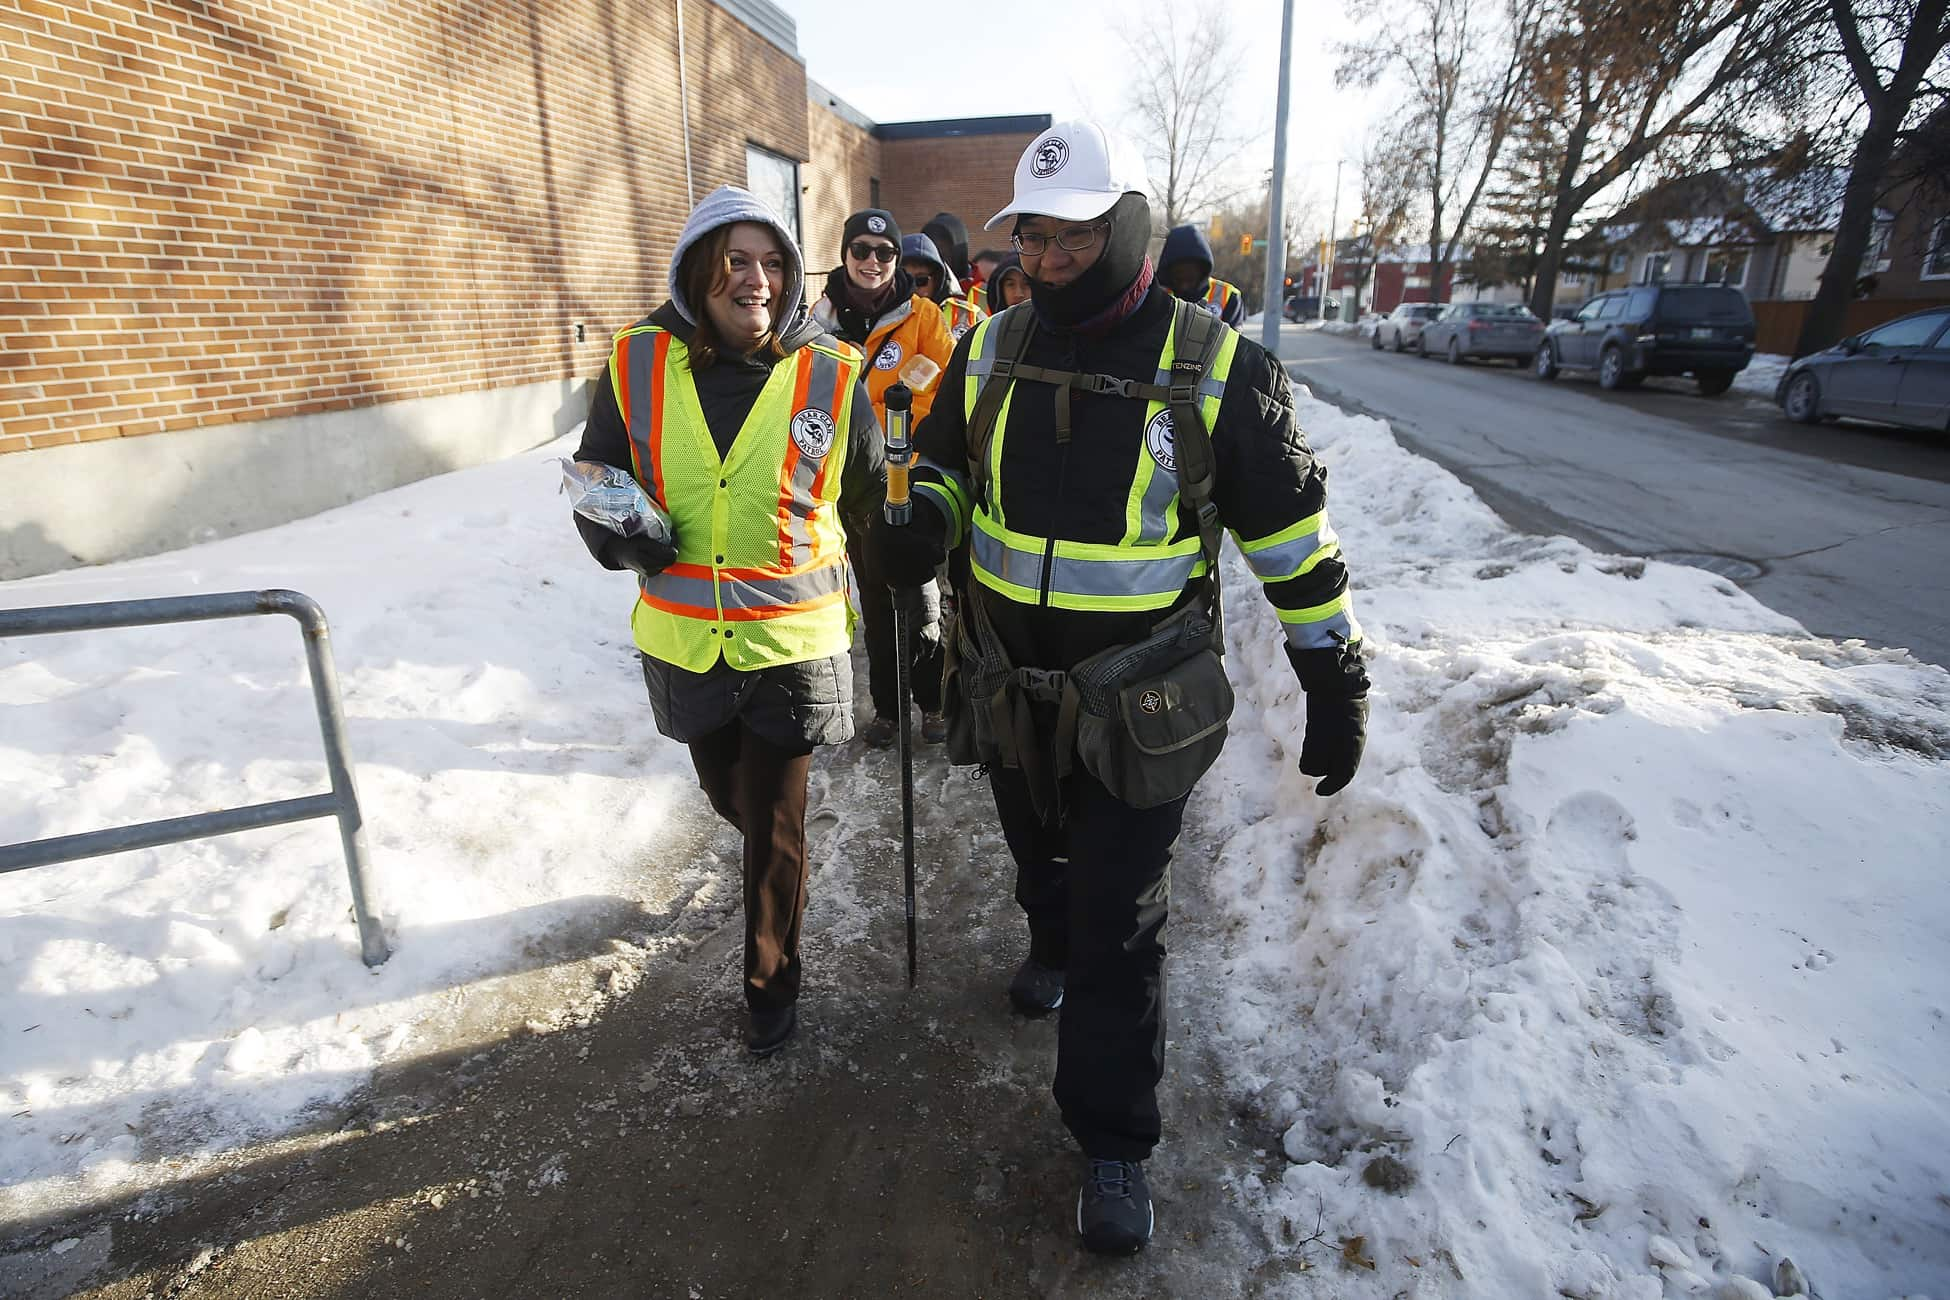 Students from General Wolfe School participated in a youth mock patrol with the Bear Clan Patrol and Winnipeg police on Ellice Ave. in Winnipeg. (John Woods / Winnipeg Free Press)